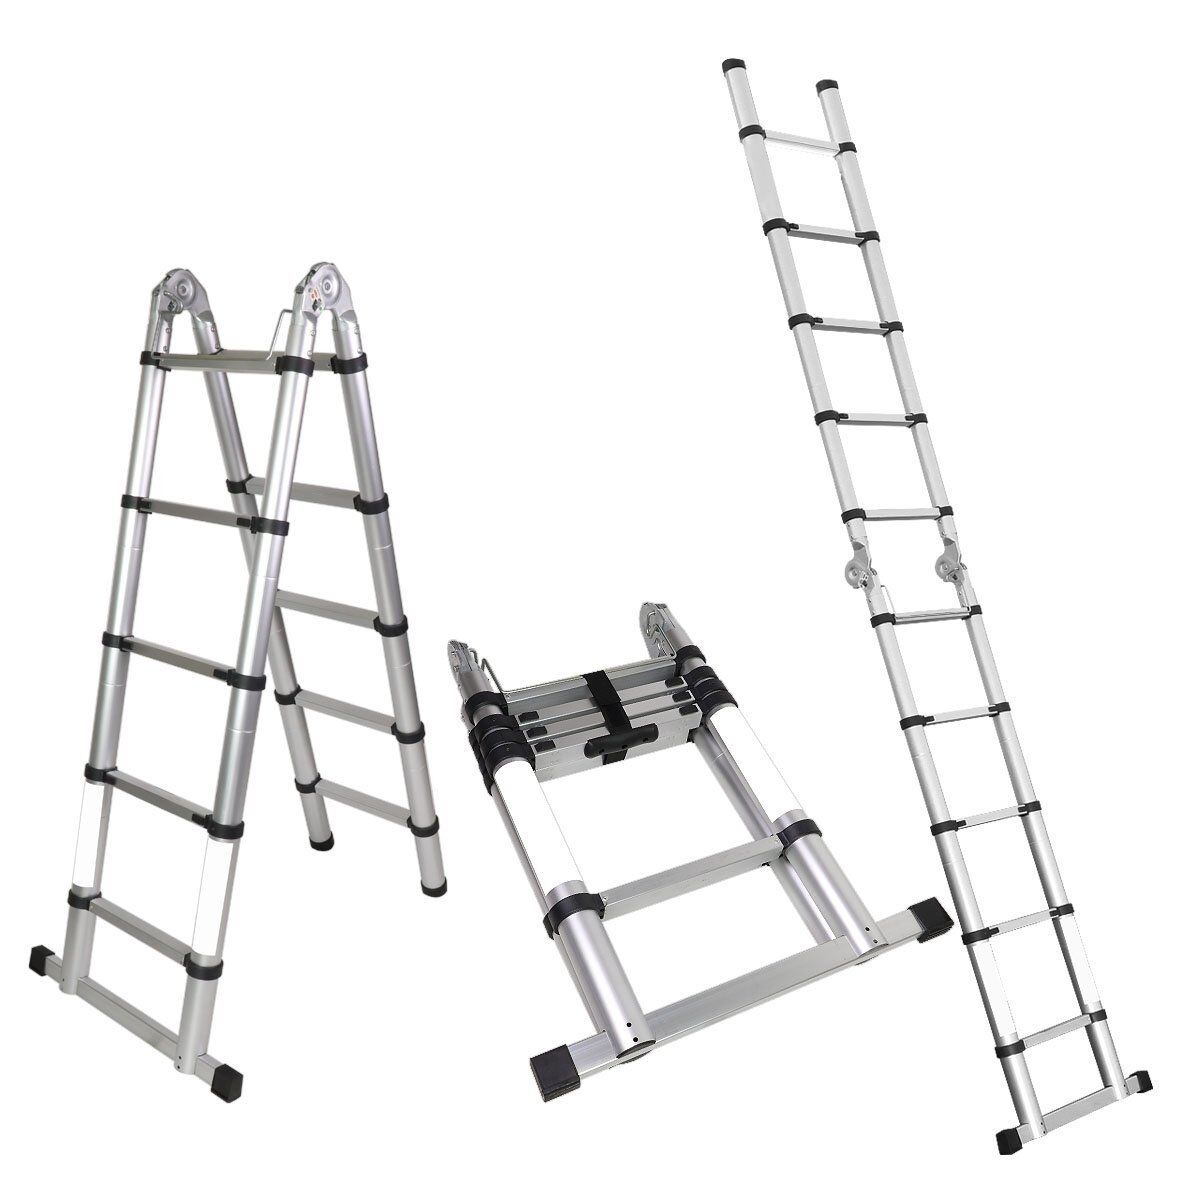 A Frame 10 5 Ft Aluminum Ladder Telescopic Extension Tall